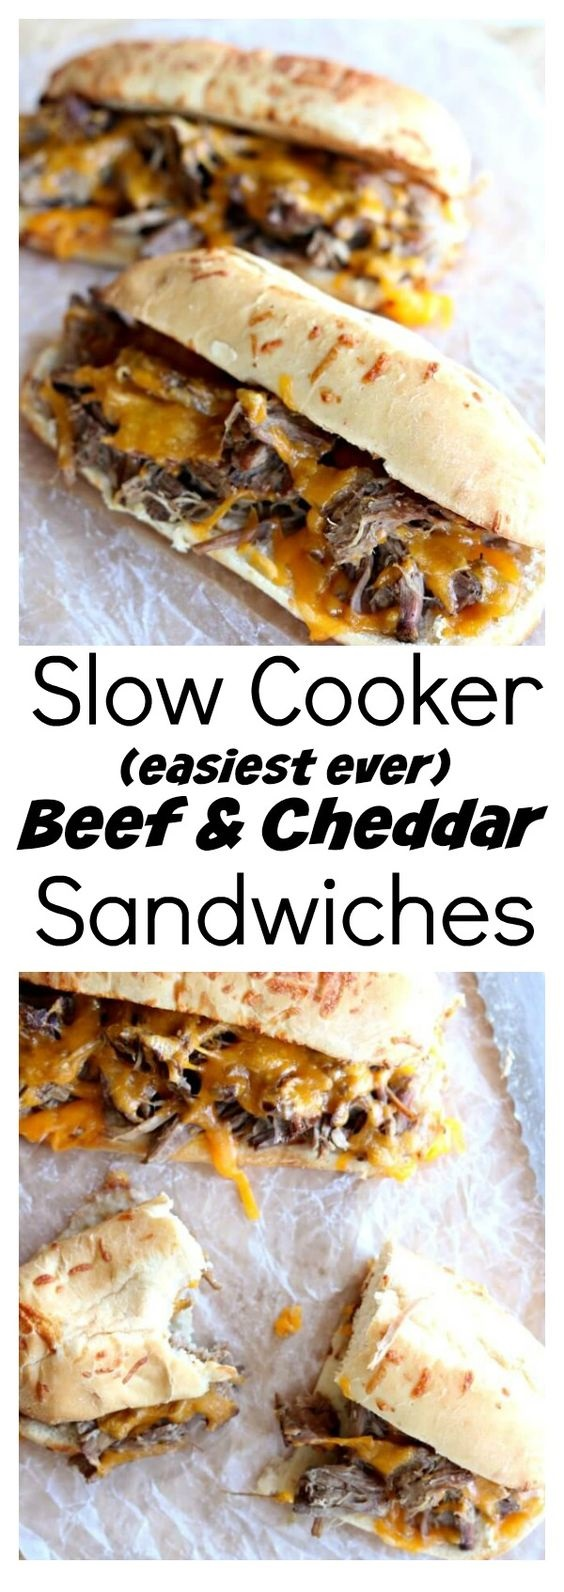 Slow Cooker Beef And Cheddar Sandwiches